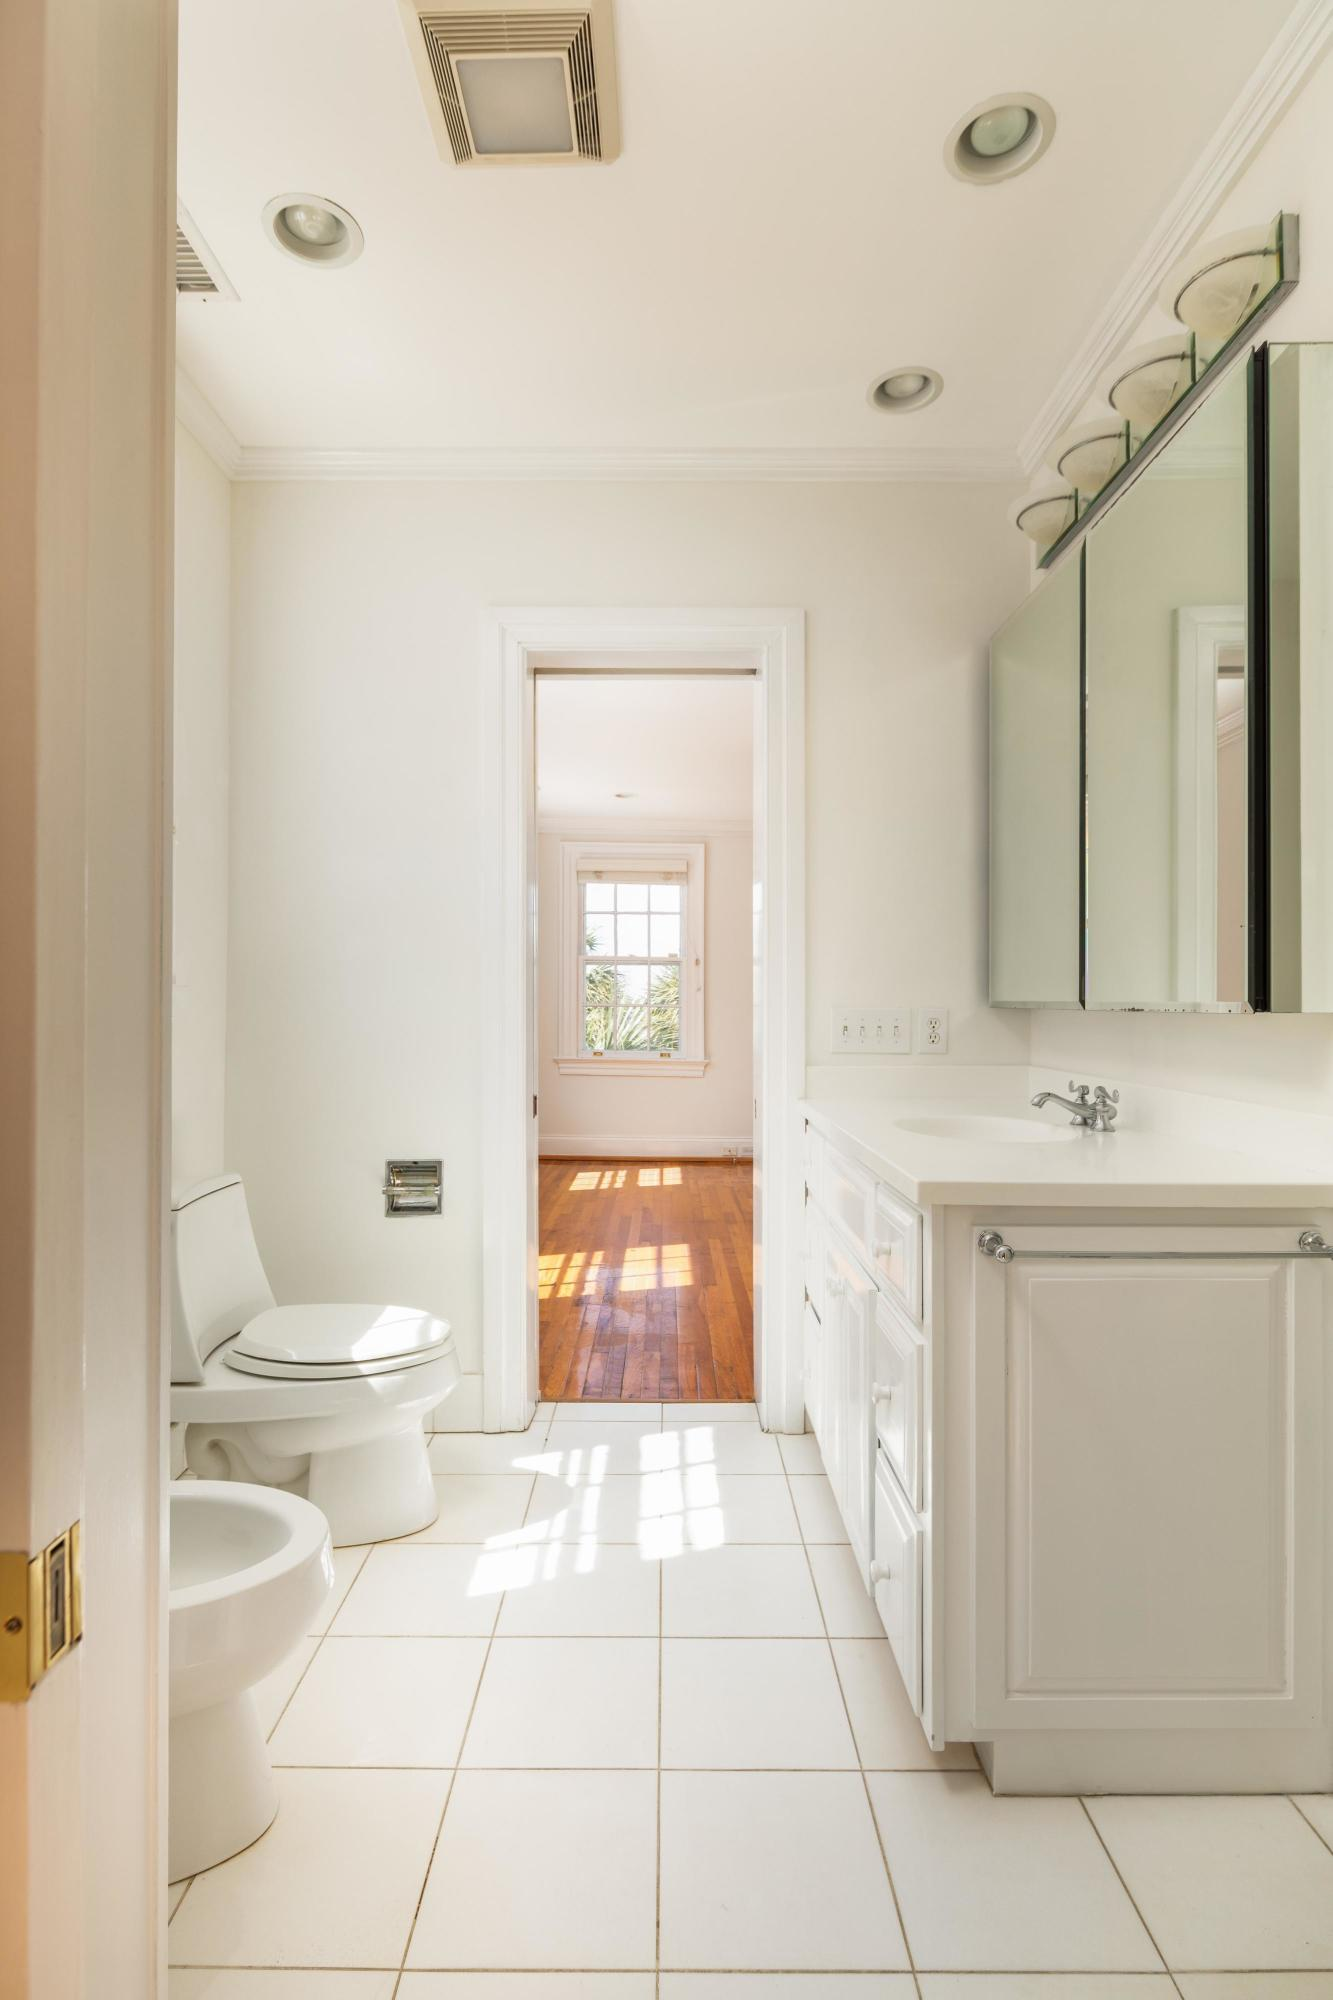 South of Broad Homes For Sale - 104 Murray, Charleston, SC - 6